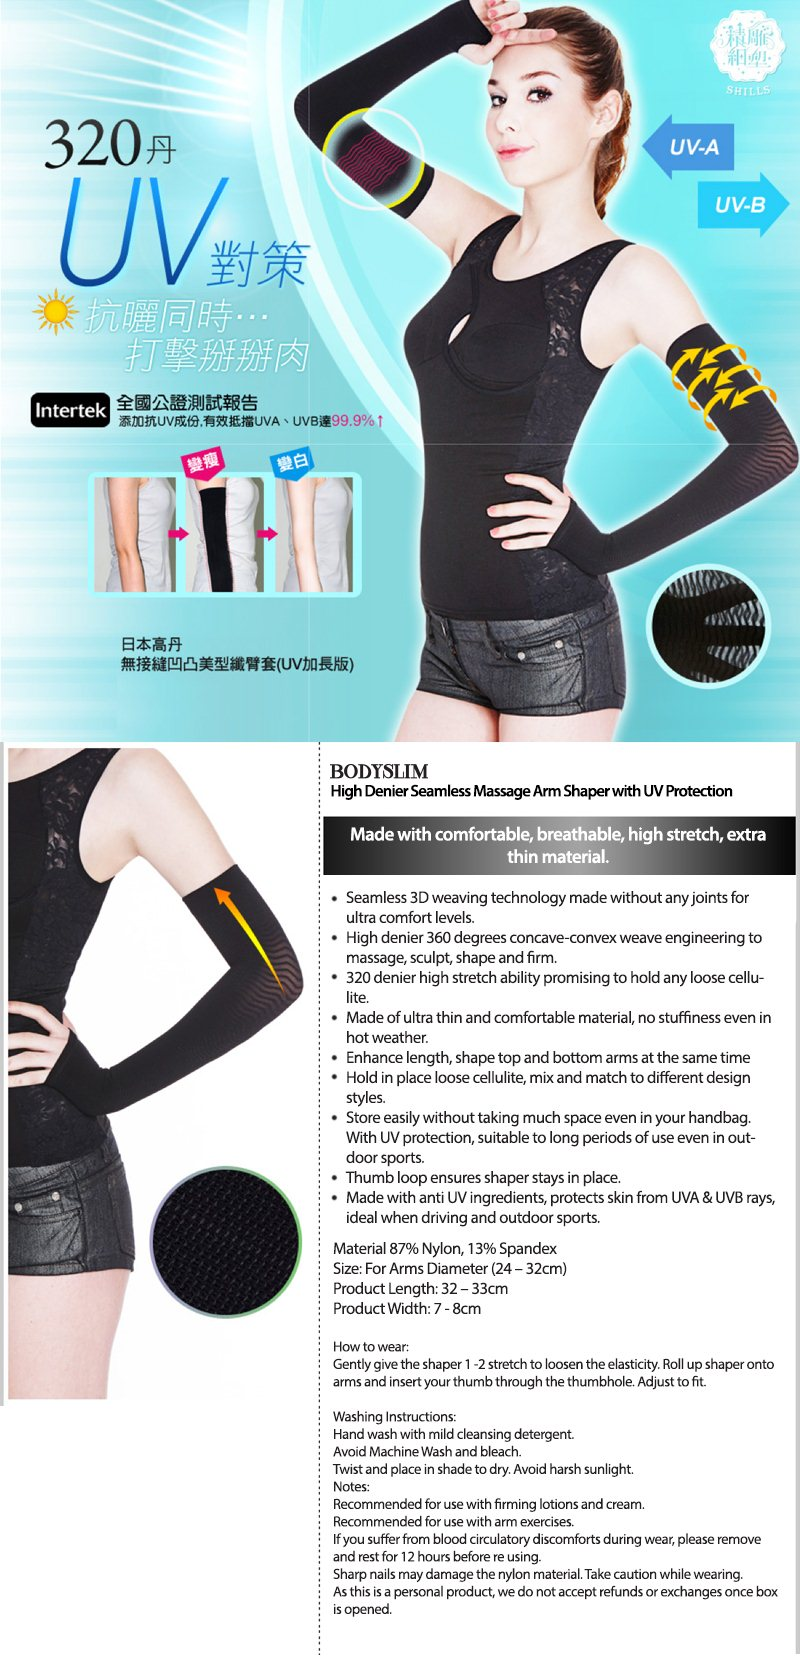 4ccb7ecc1f SHILLS Bodyslim Seamless Magic Long Arm Shaper (UV protect)